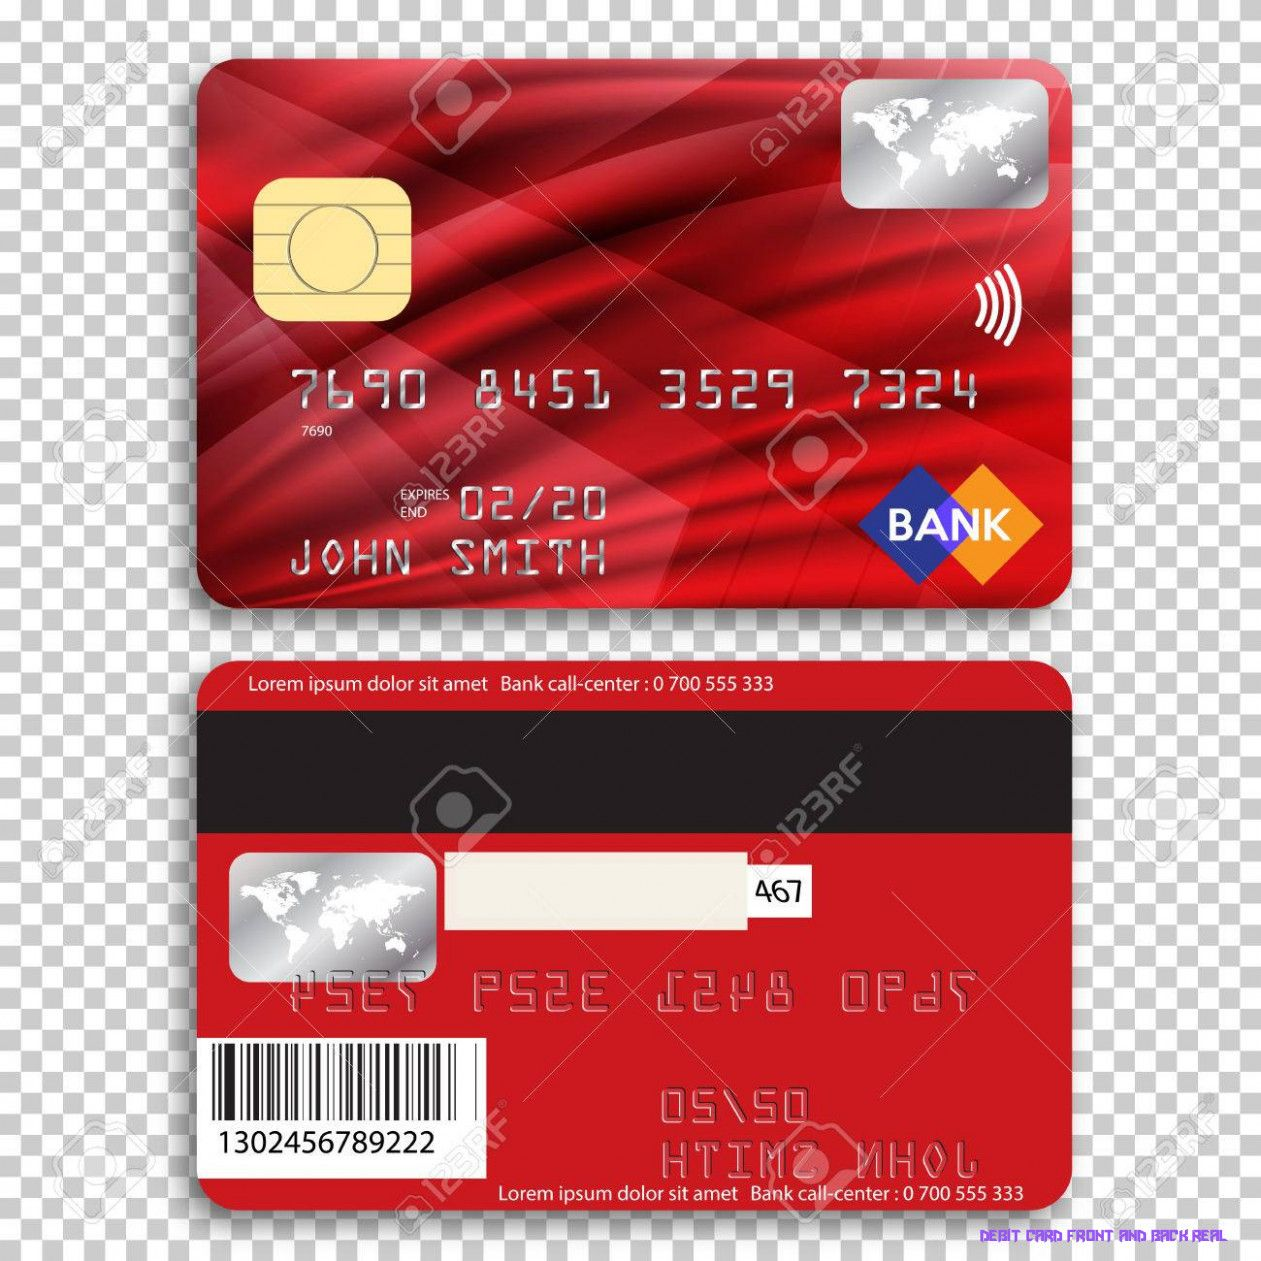 10 Common Myths About Debit Card Front And Back Real | debit card front and back real https ...